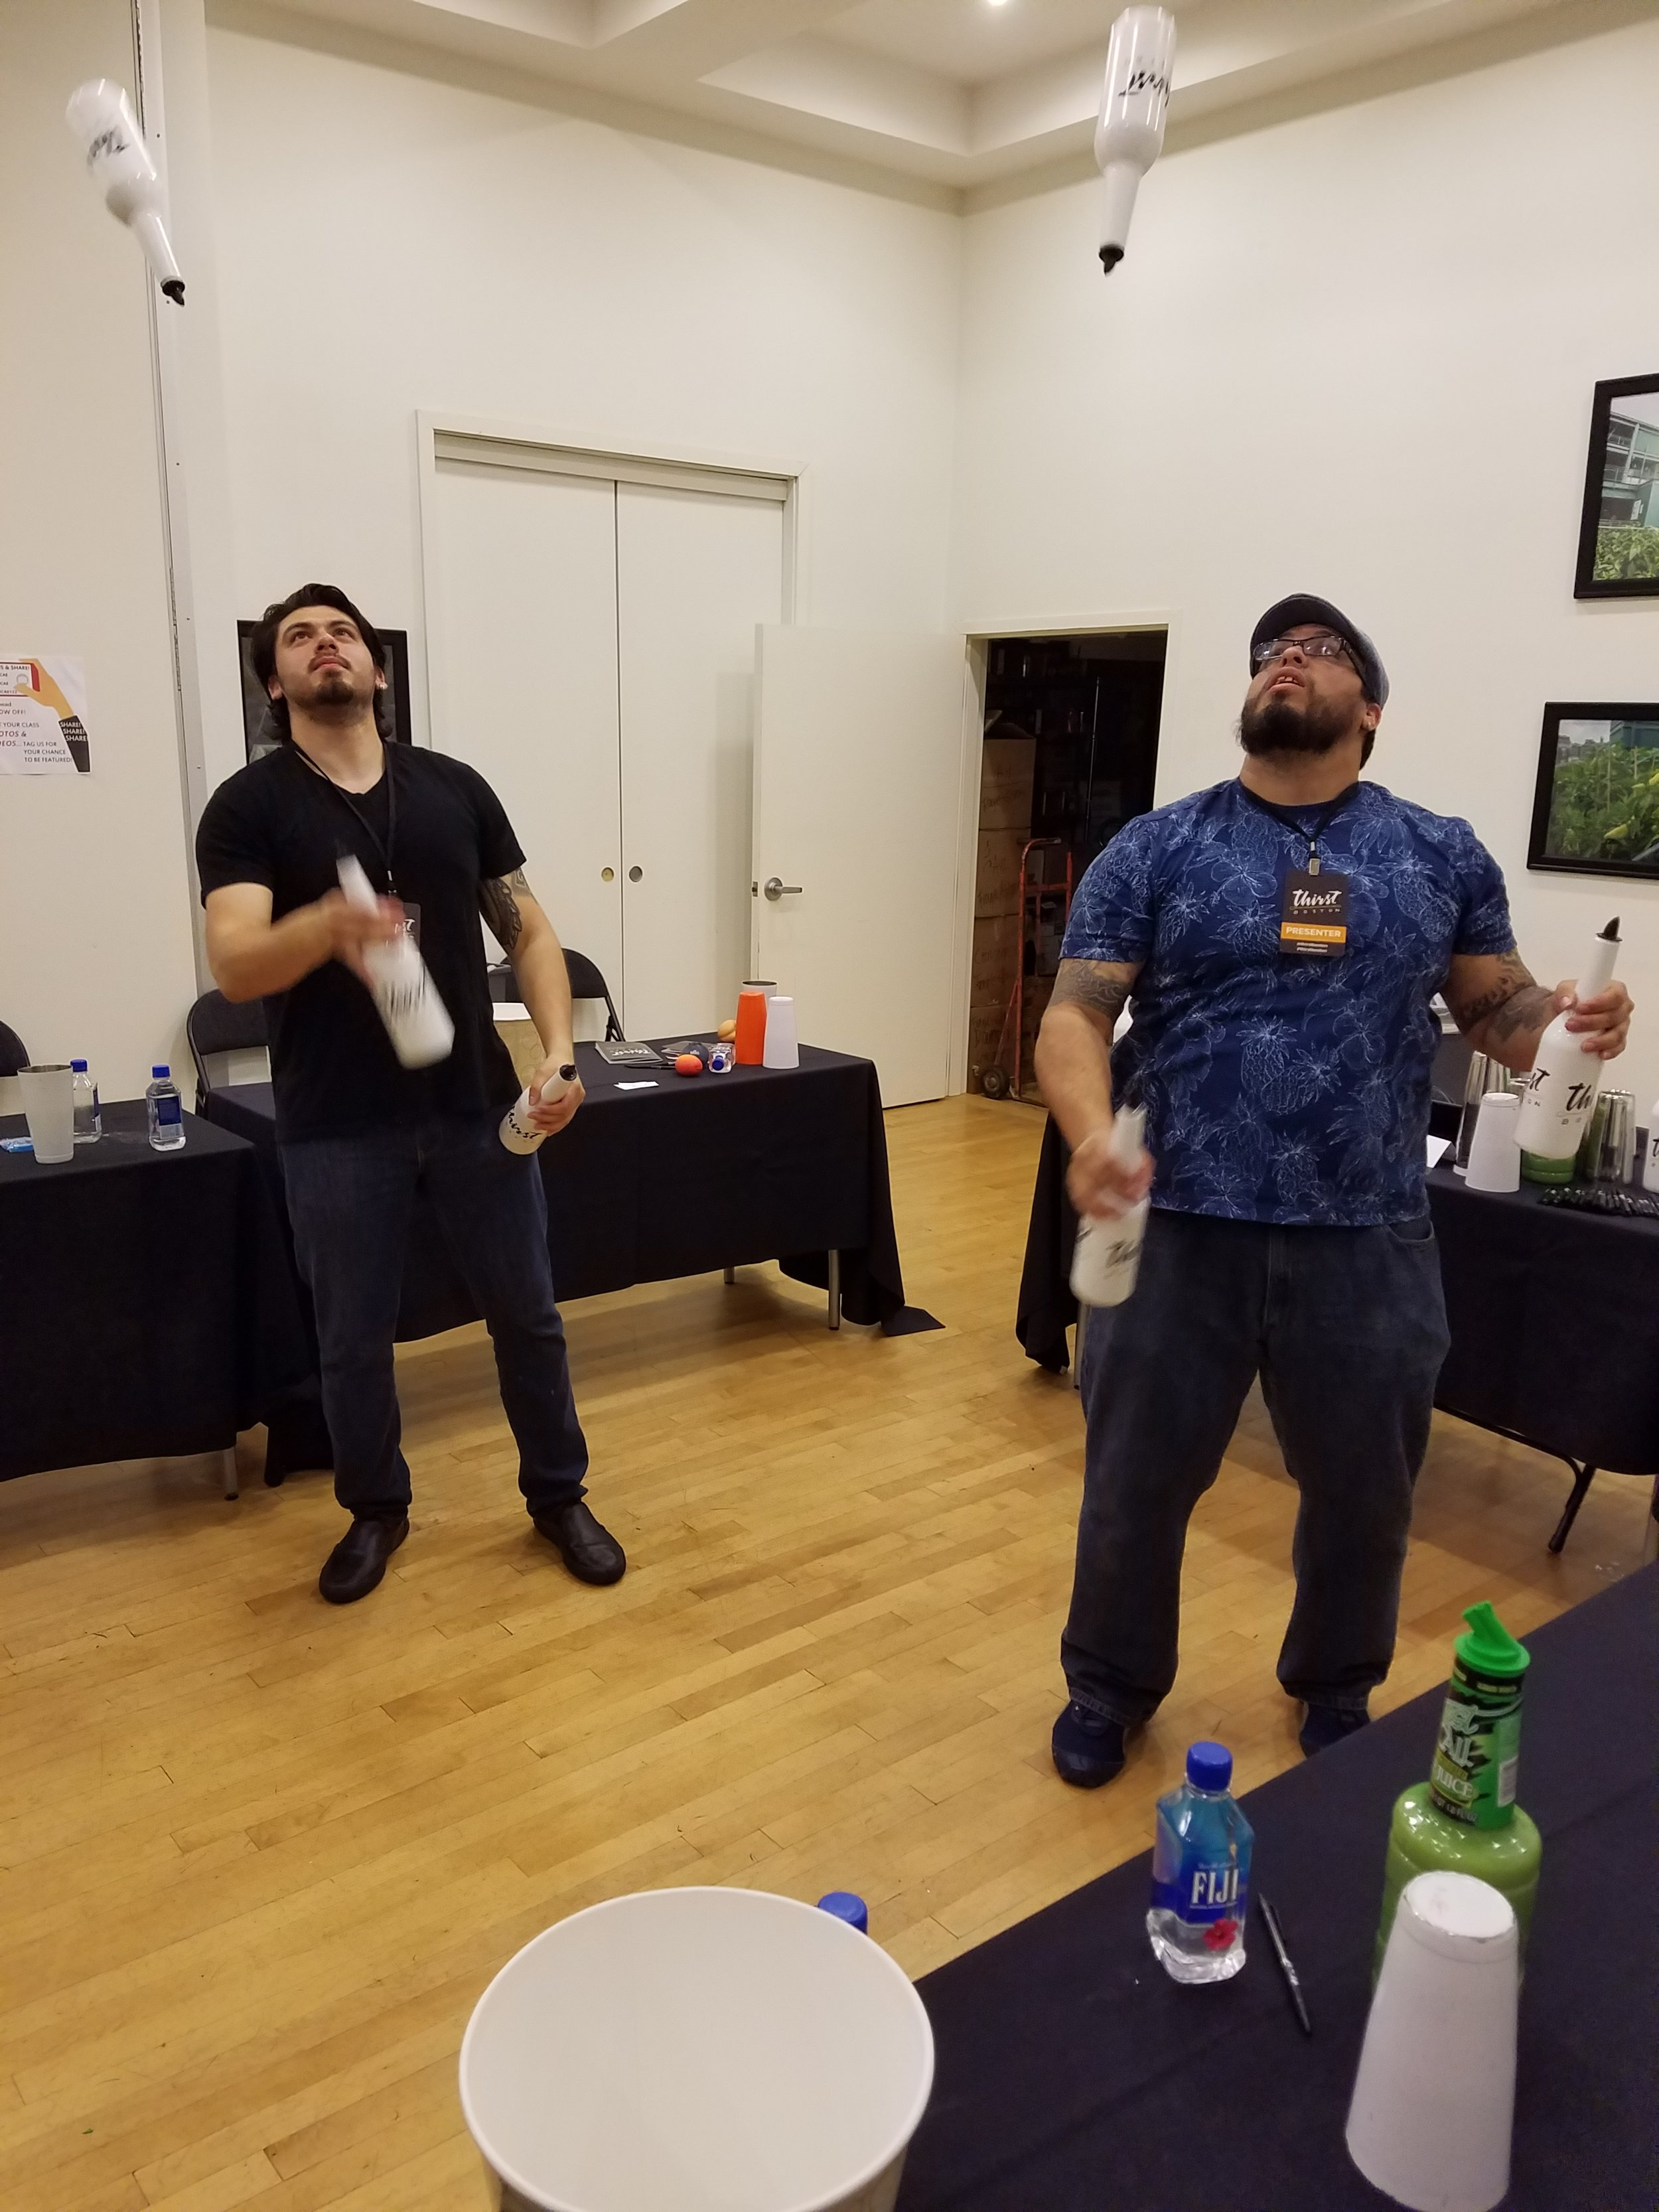 The family that juggles together....Will and Moe Isaza teach functional flair. Eat your heart out, Tom Cruise.